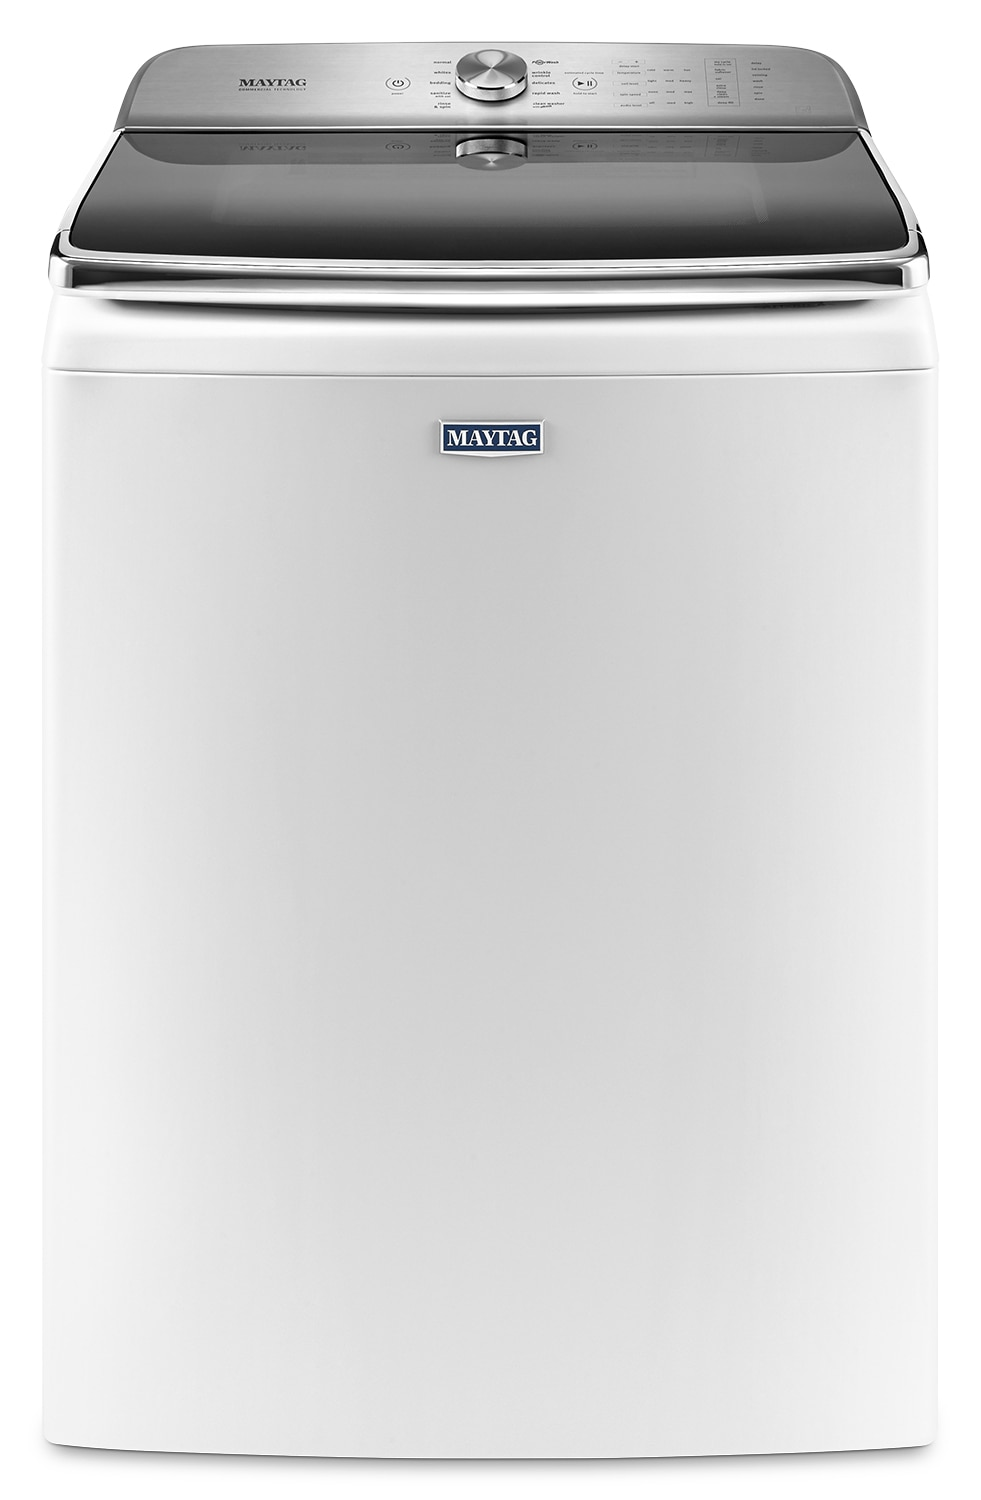 Washers and Dryers - Maytag 7.1 Cu. Ft. Top-Load Washer – MVWB955FW